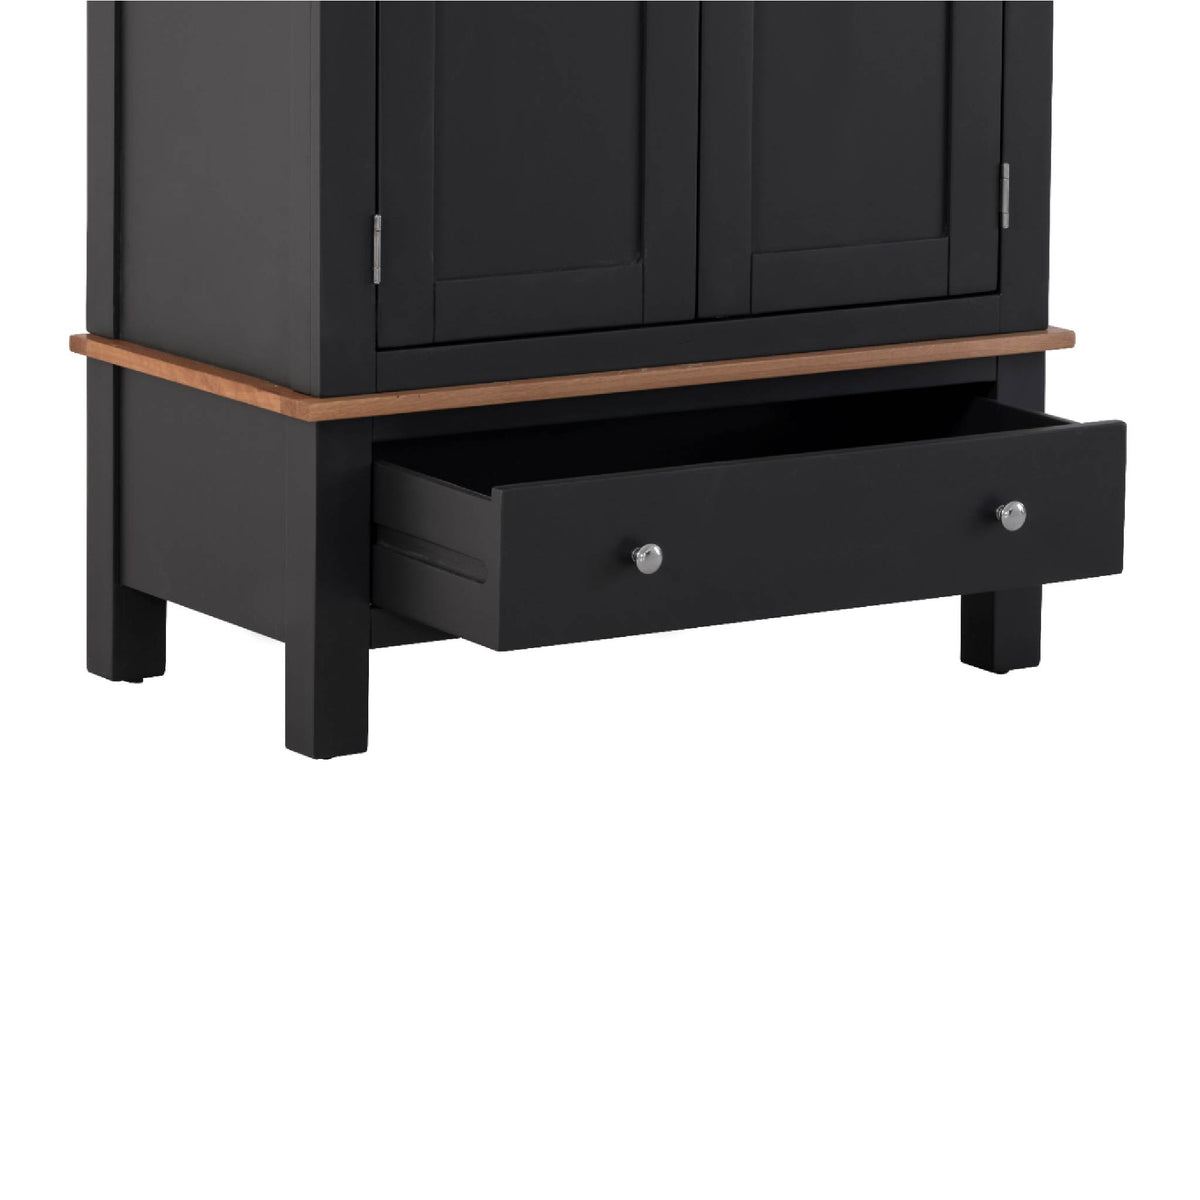 Charlestown Black Double Wardrobe with Drawer  - Drawer Close Up